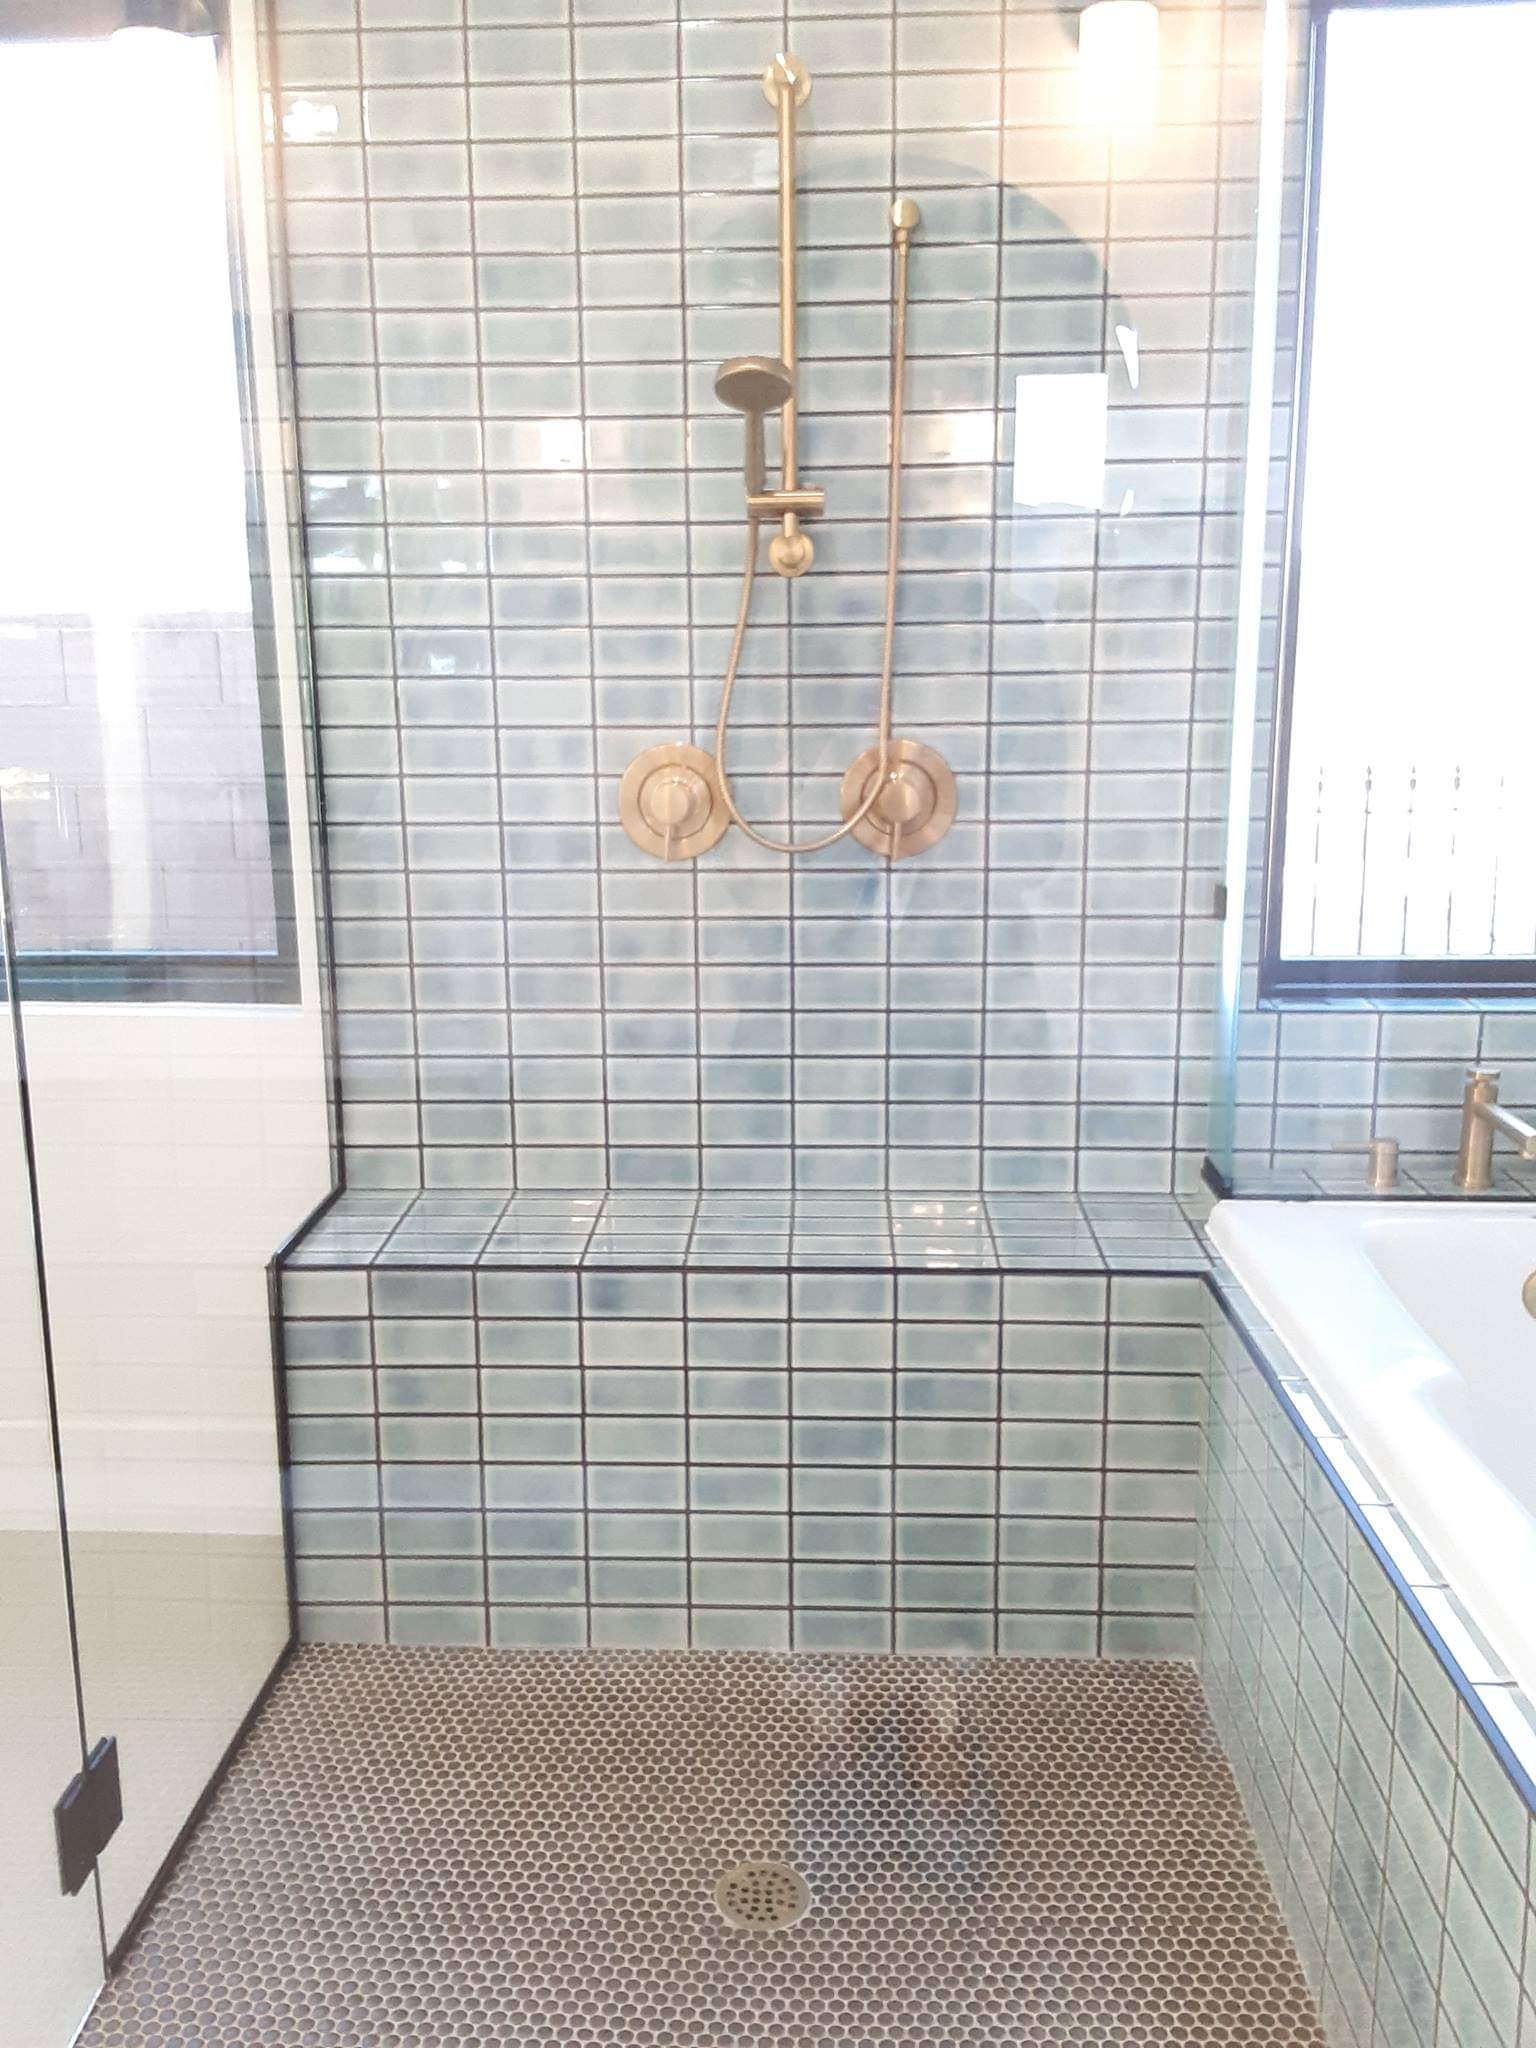 View inside of shower